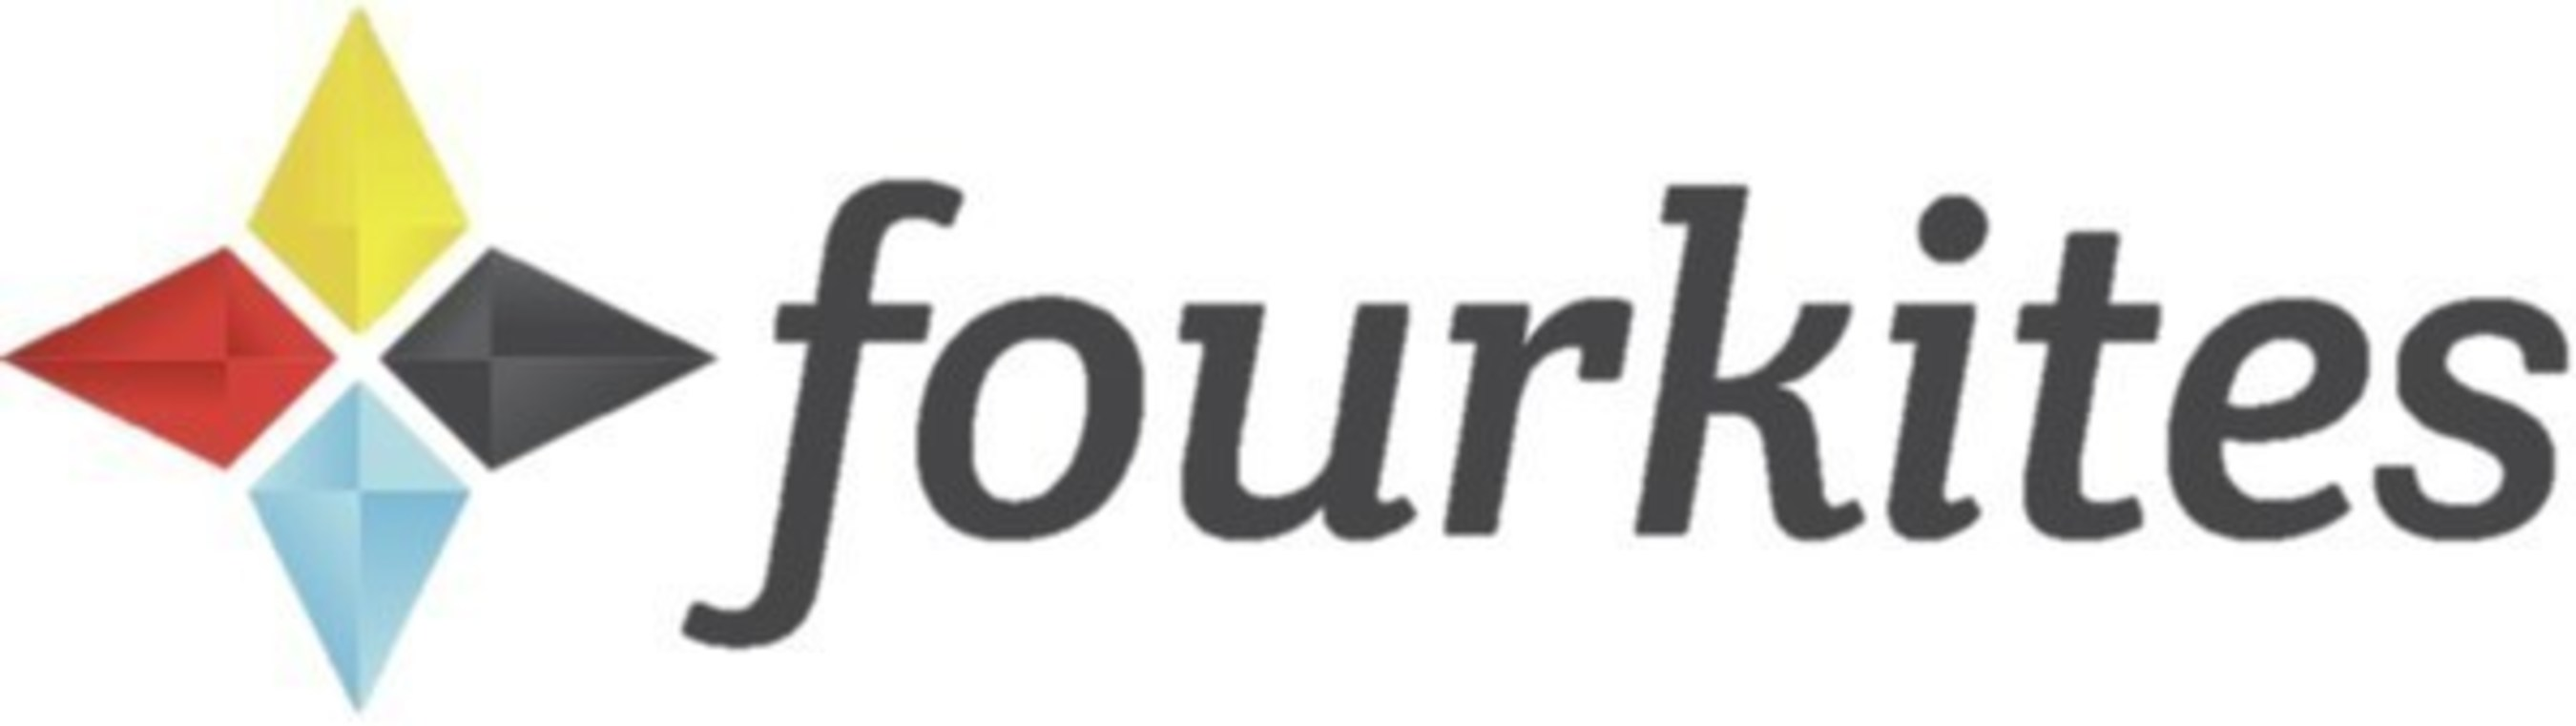 FourKites Expands Platform to Include Real-Time Flip Phone Tracking